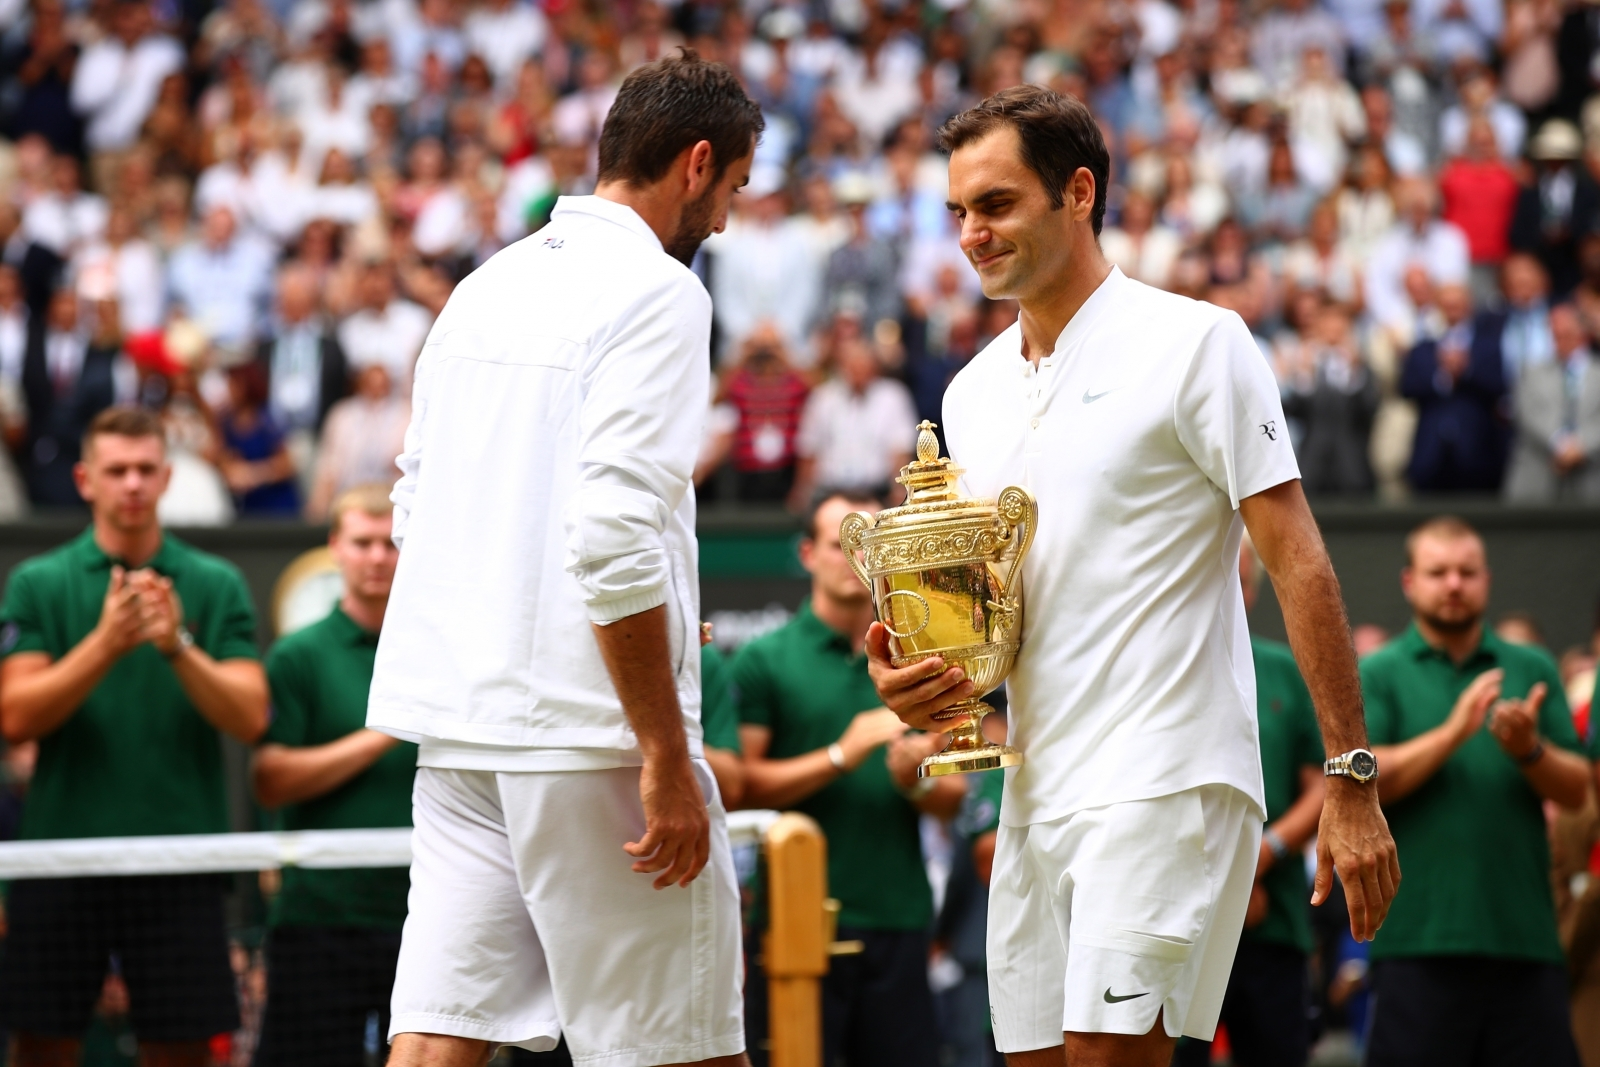 Marin Cilic and Roger Federer